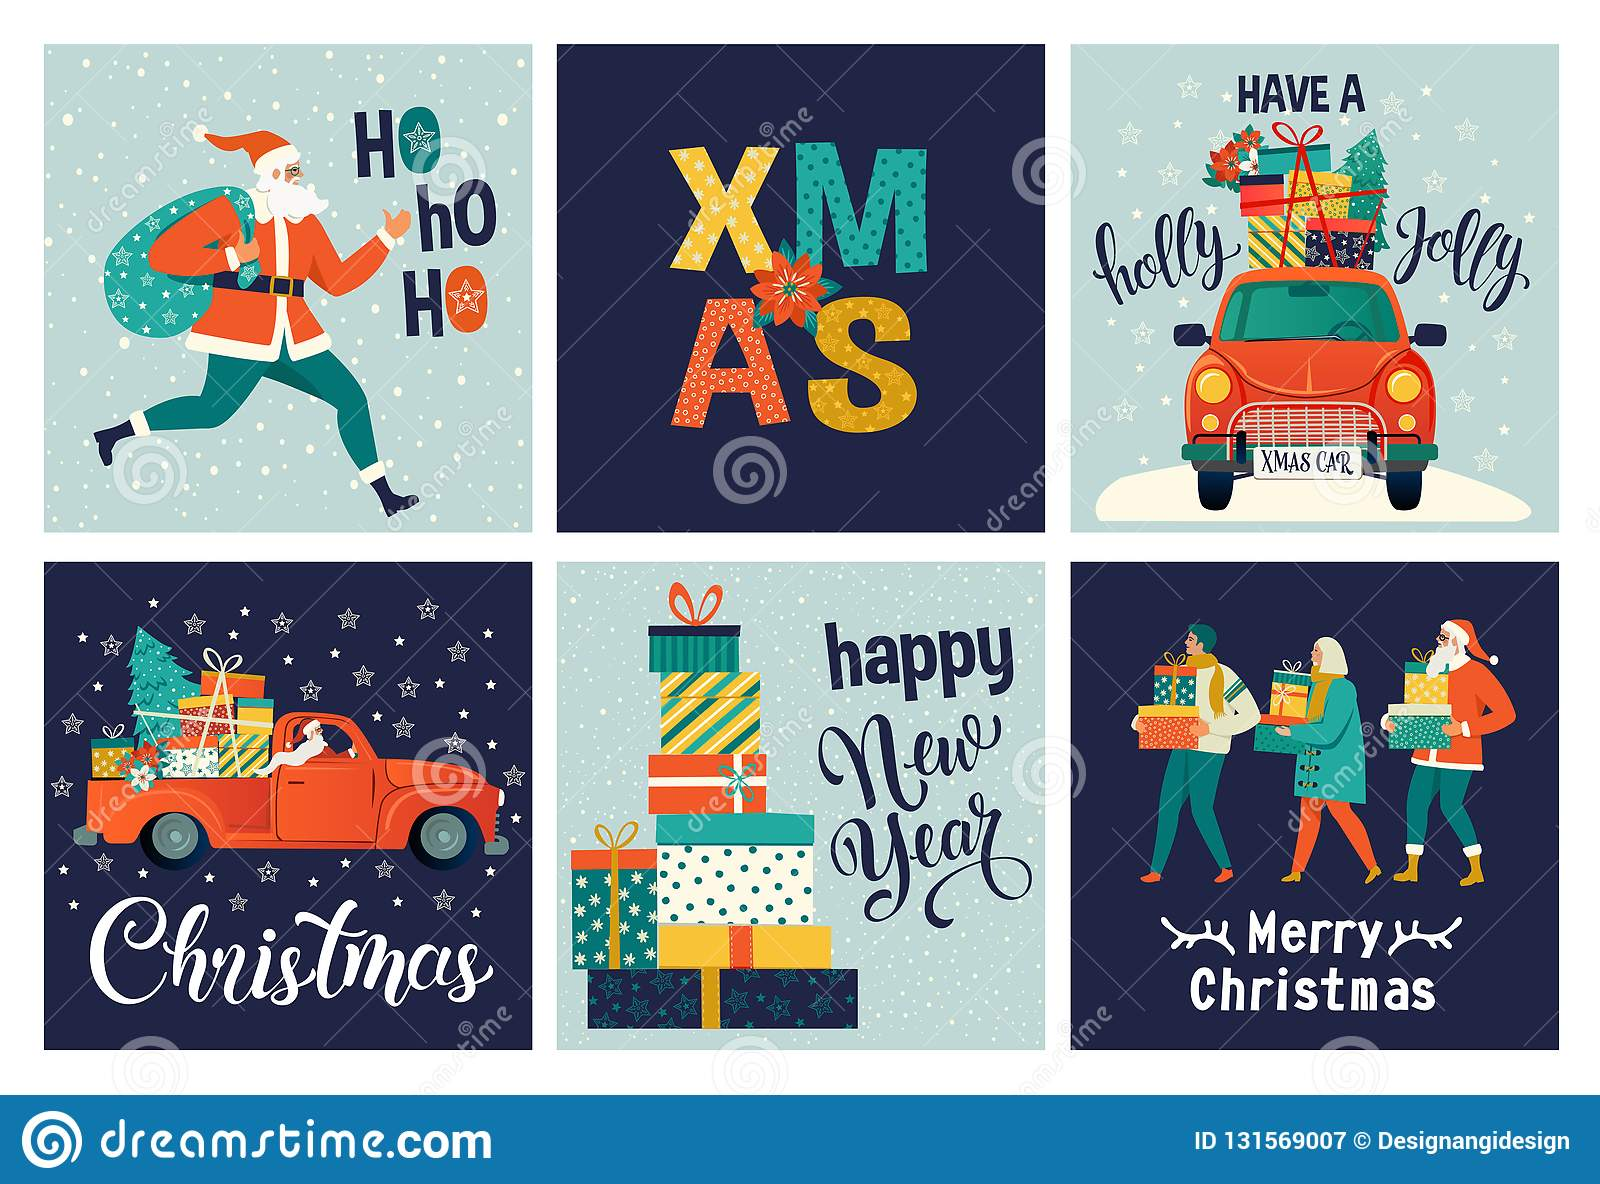 Happy New Year Printable Cards Stock Illustrations 949 Happy New Year Printable Cards Stock Illustrations Vectors Clipart Dreamstime